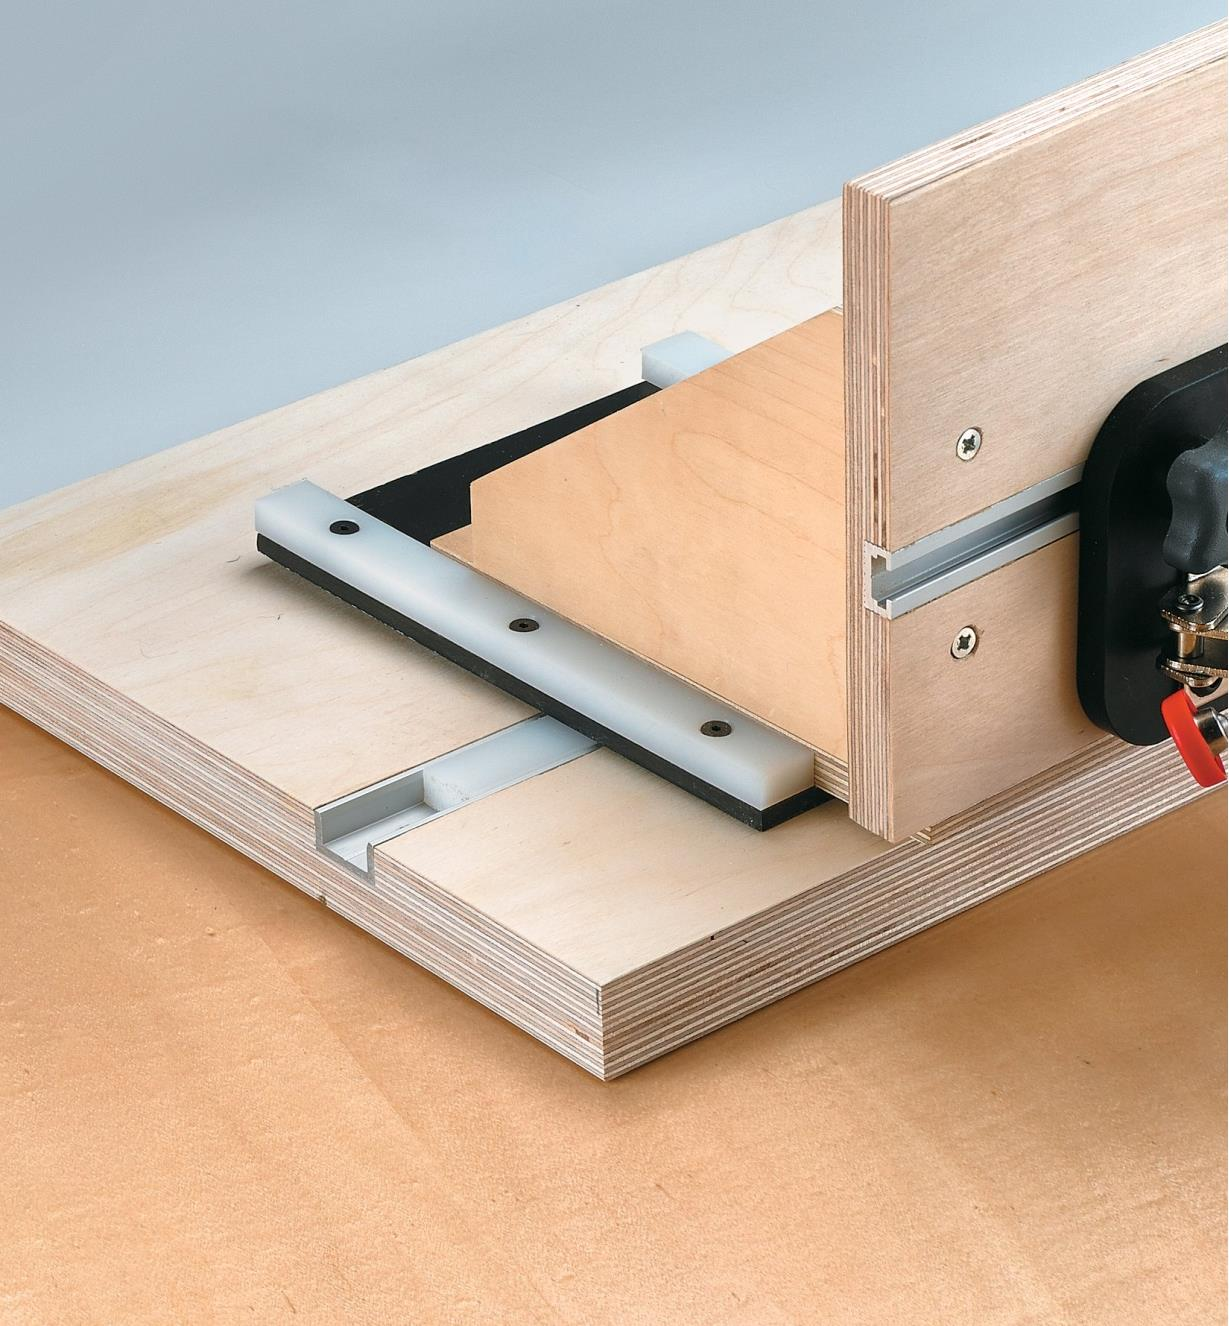 Combination of wide slot extrusion and T-slot track to make a mortising jig